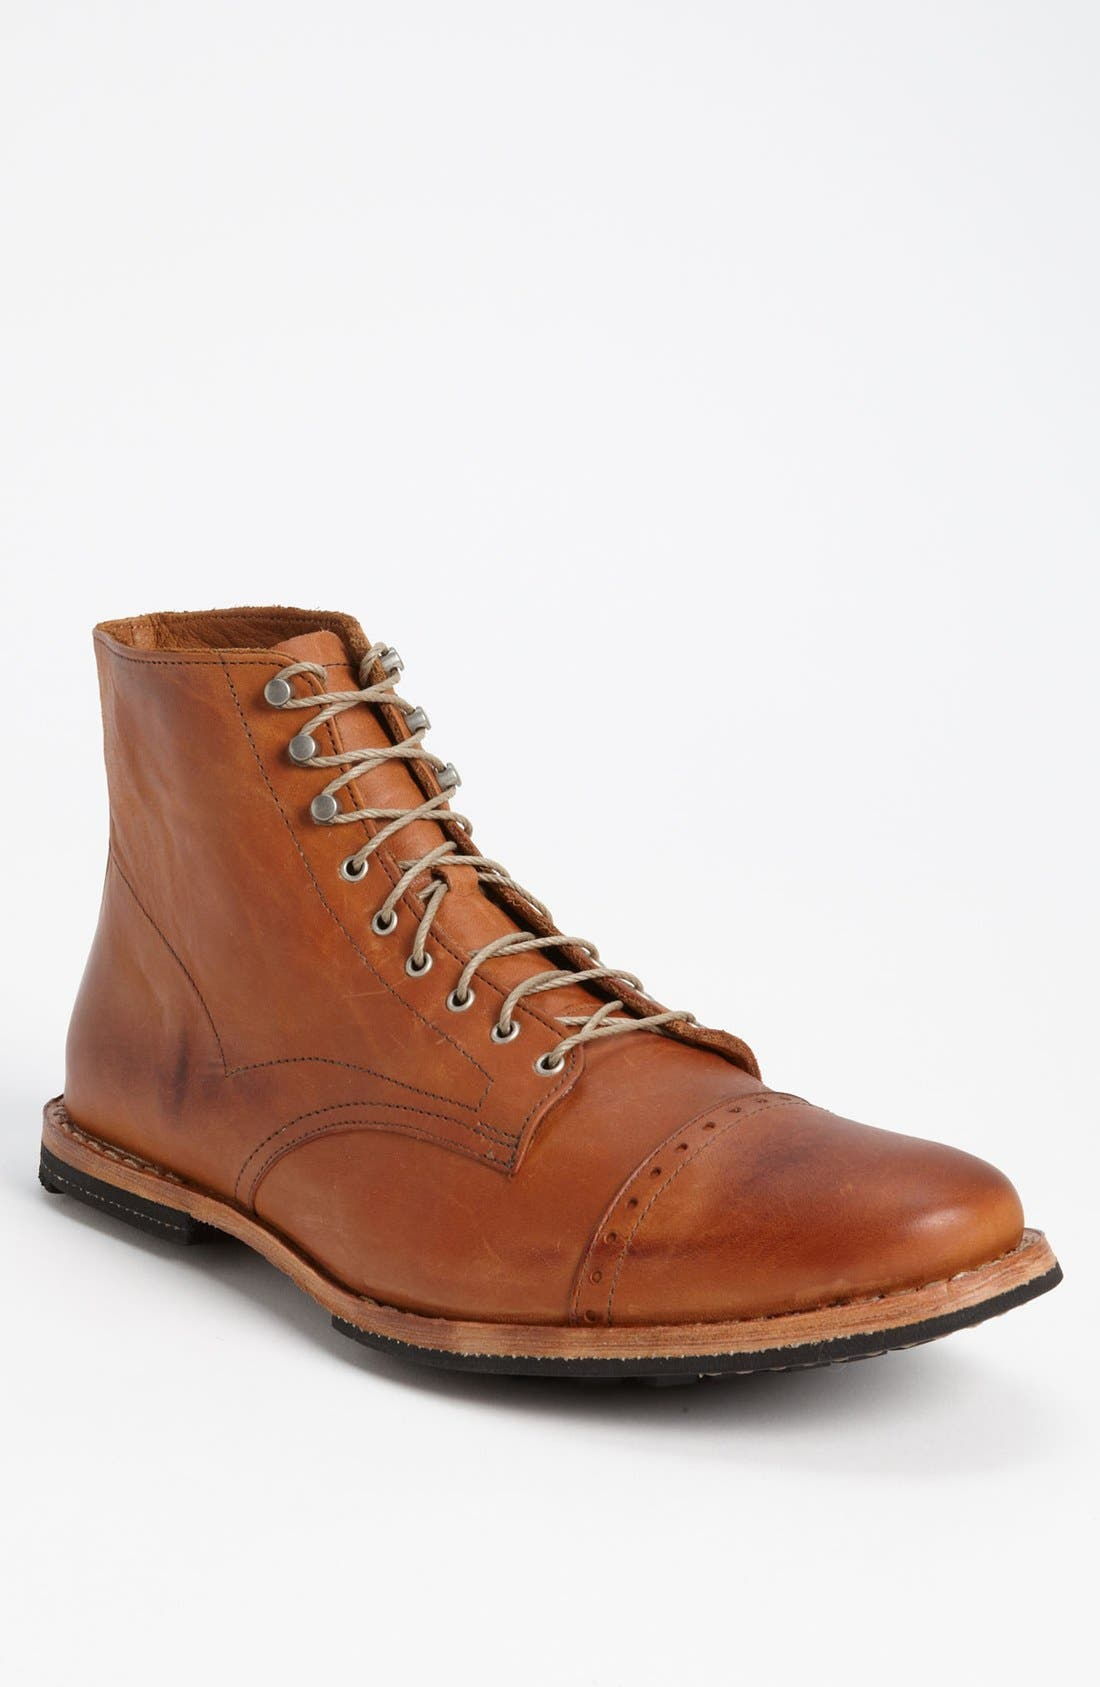 Alternate Image 1 Selected - TIMBERLAND LOST HISTORY CAP TOE CHUKKA BOOT